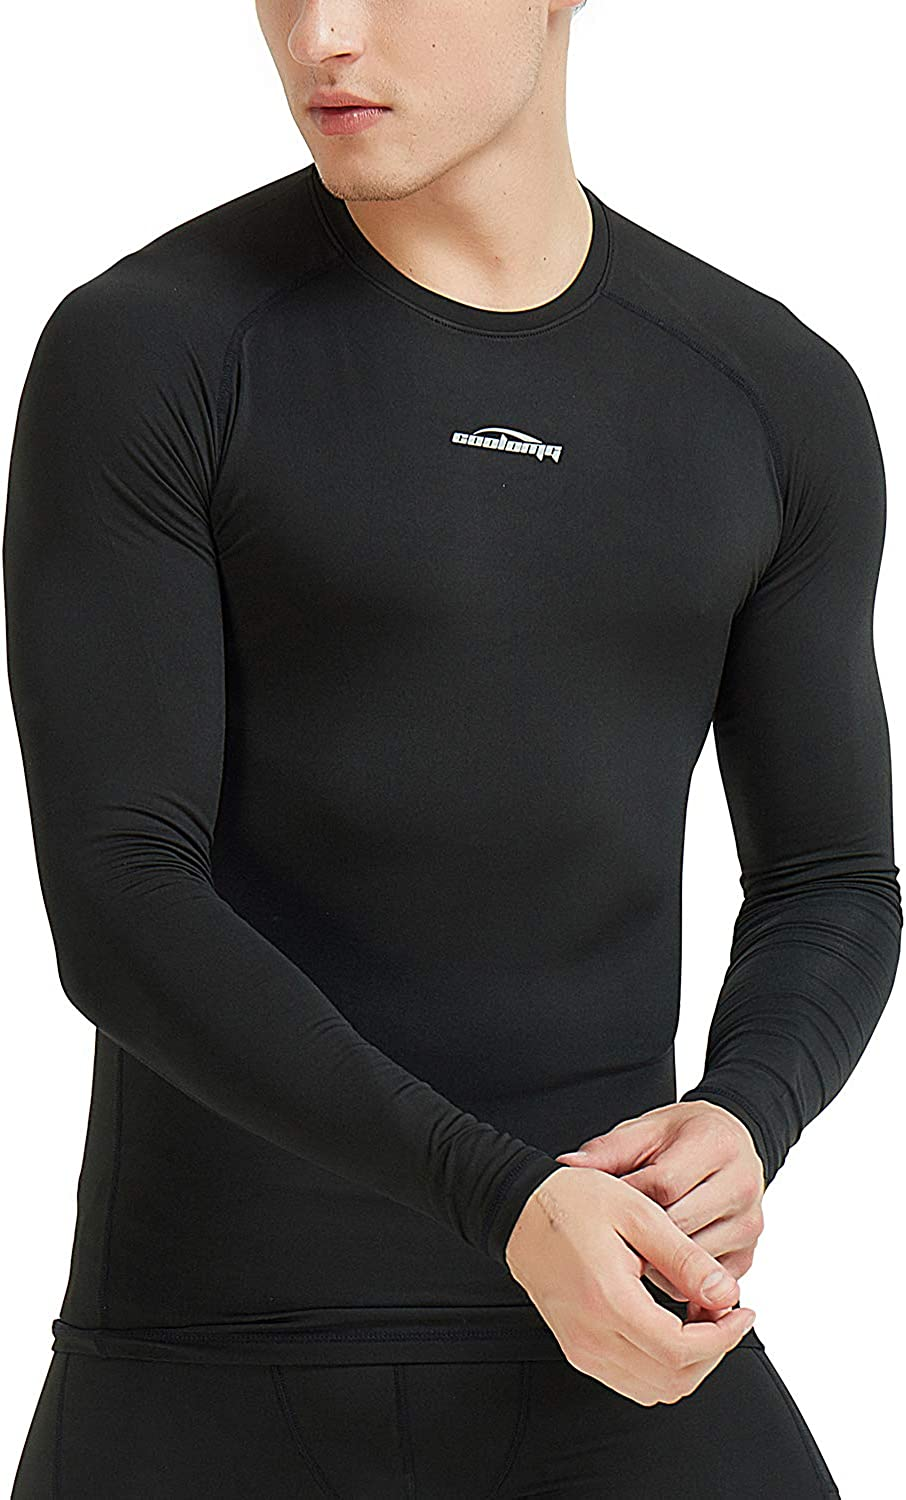 Legendfit Men's Thermal Shirts Fleece Lined Compression Baselayers Long Sleeve Tops Undershirts Winter Gear